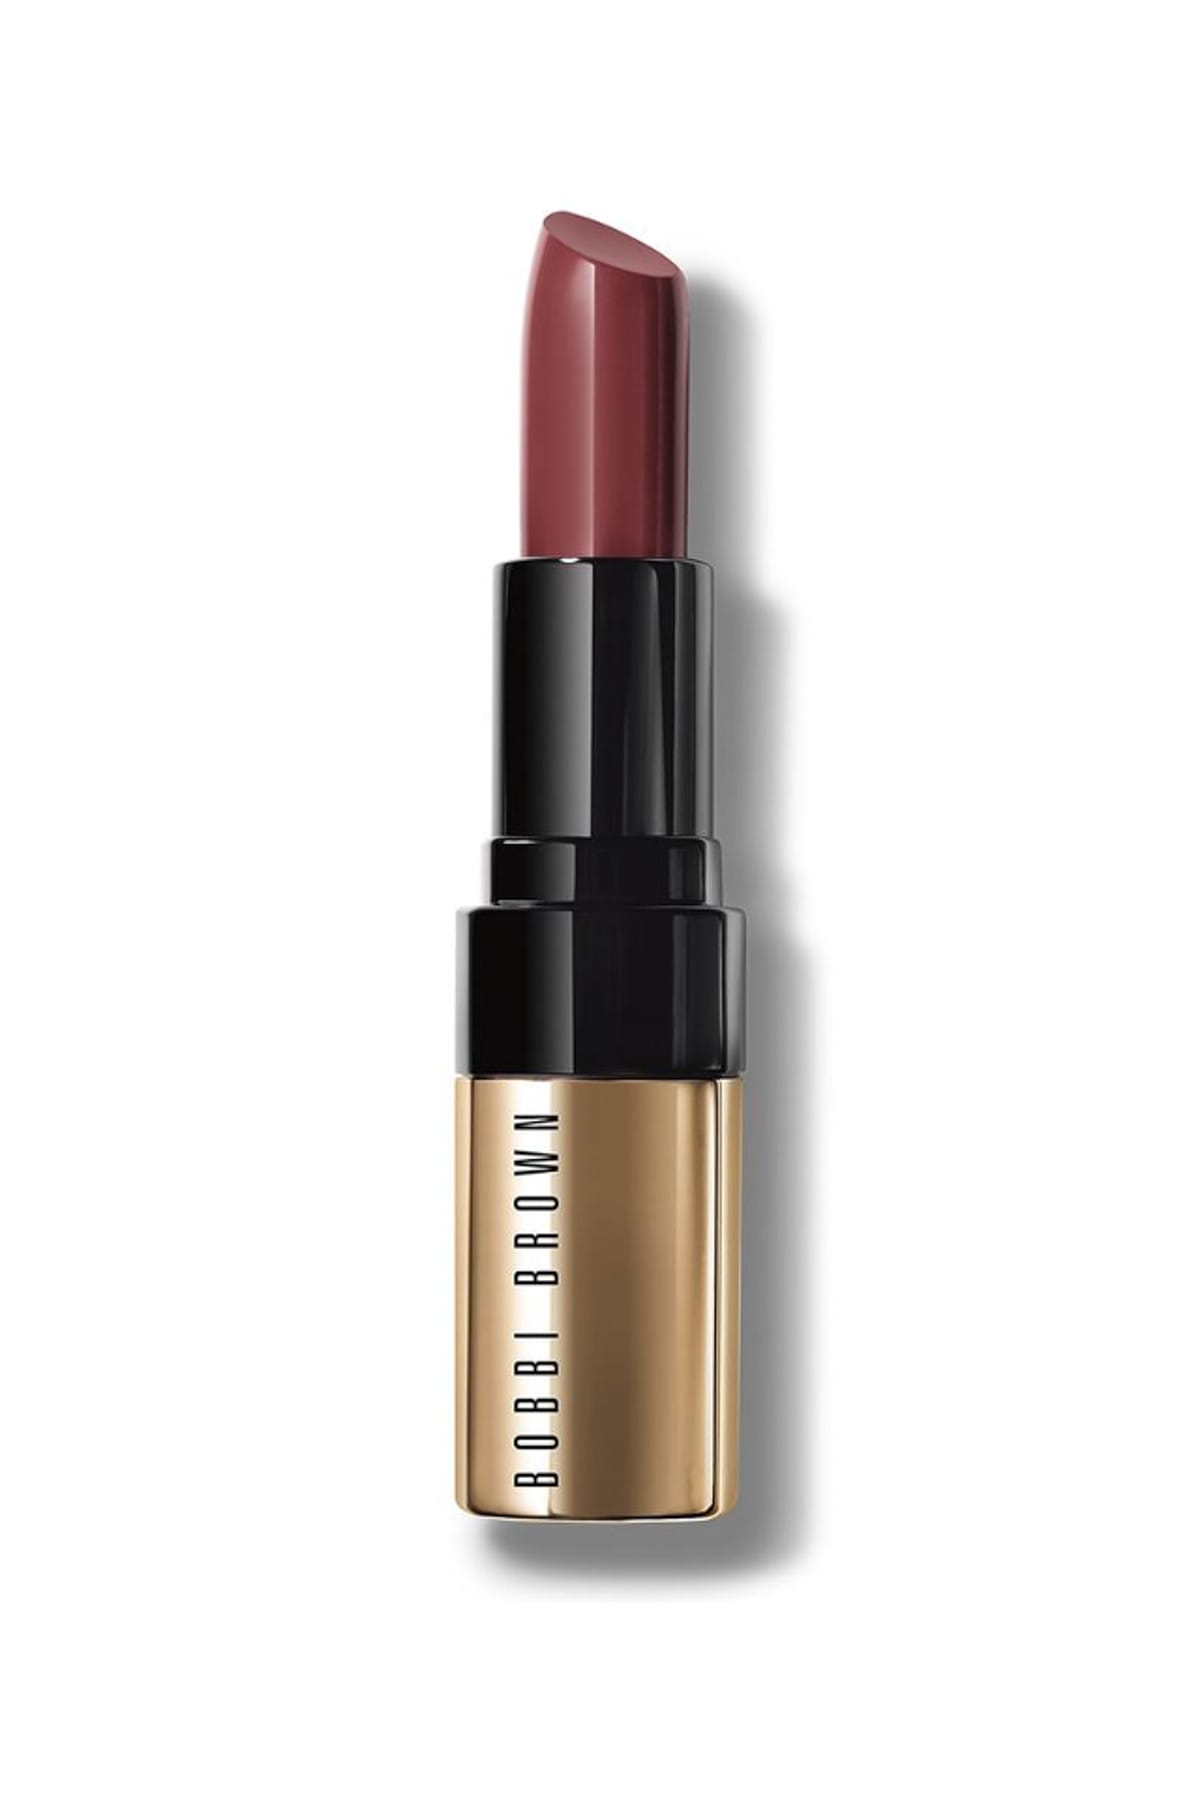 BOBBI BROWN Ruj - Luxe Lip Color Red Berry 3.8 g 716170150413 1